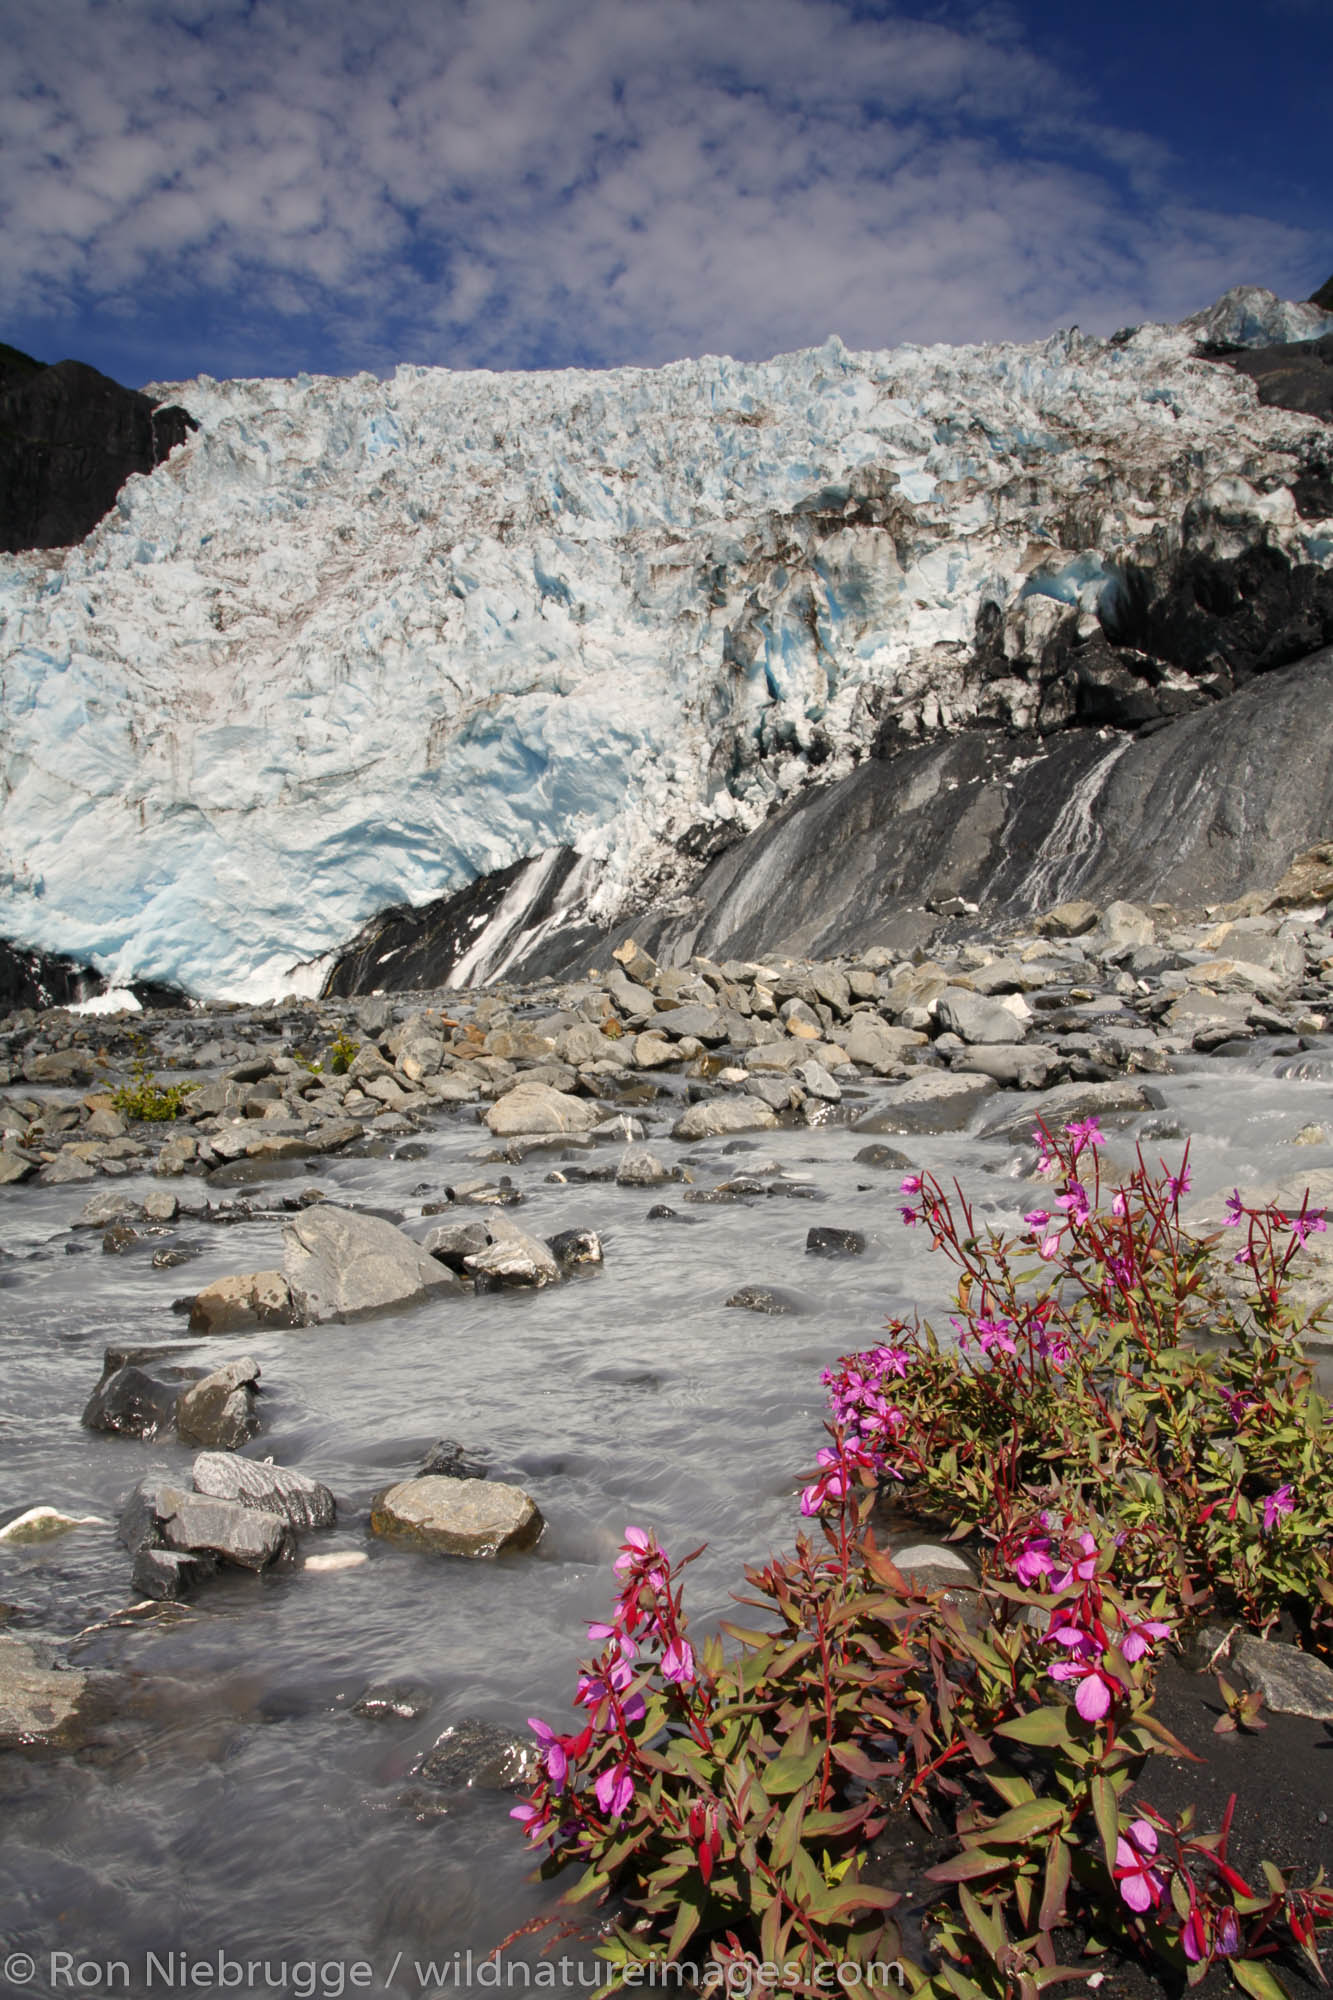 Dwarf Fireweed blooms in front of Coxe Glaicer, Harriman Fiord, Prince William Sound, Chugach National Forest, Alaska.